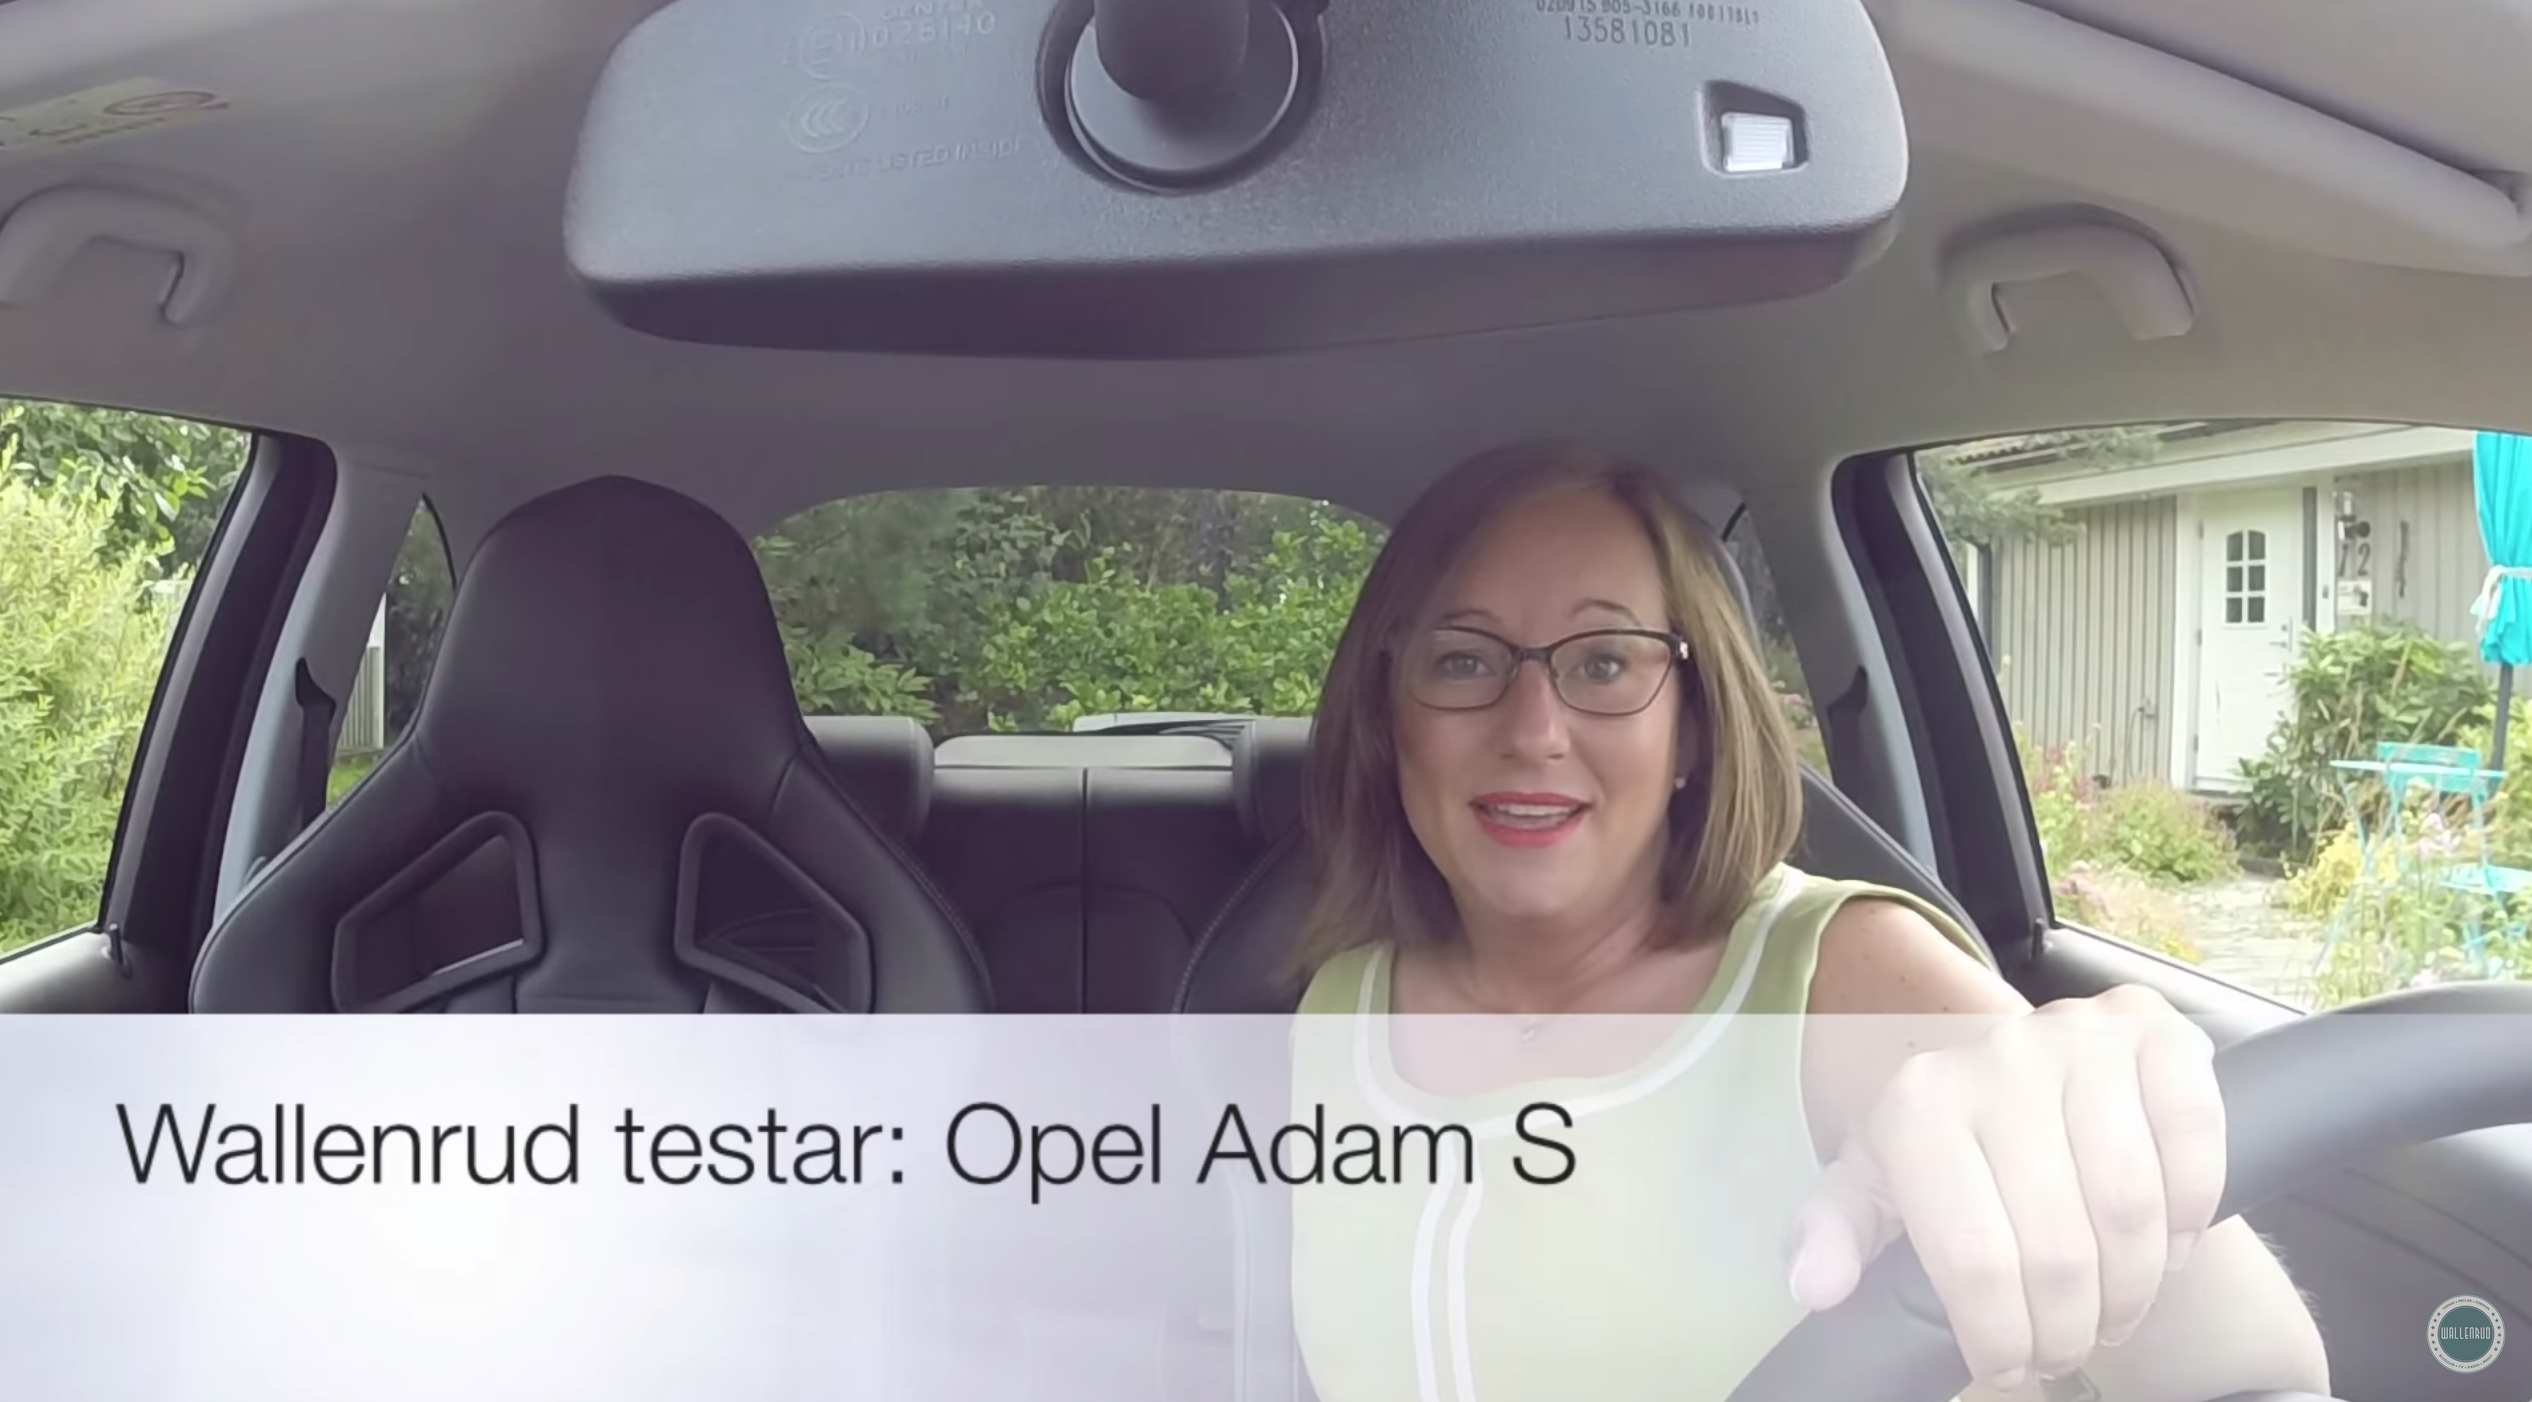 Wallenrud testar: Opel Adam S (video)